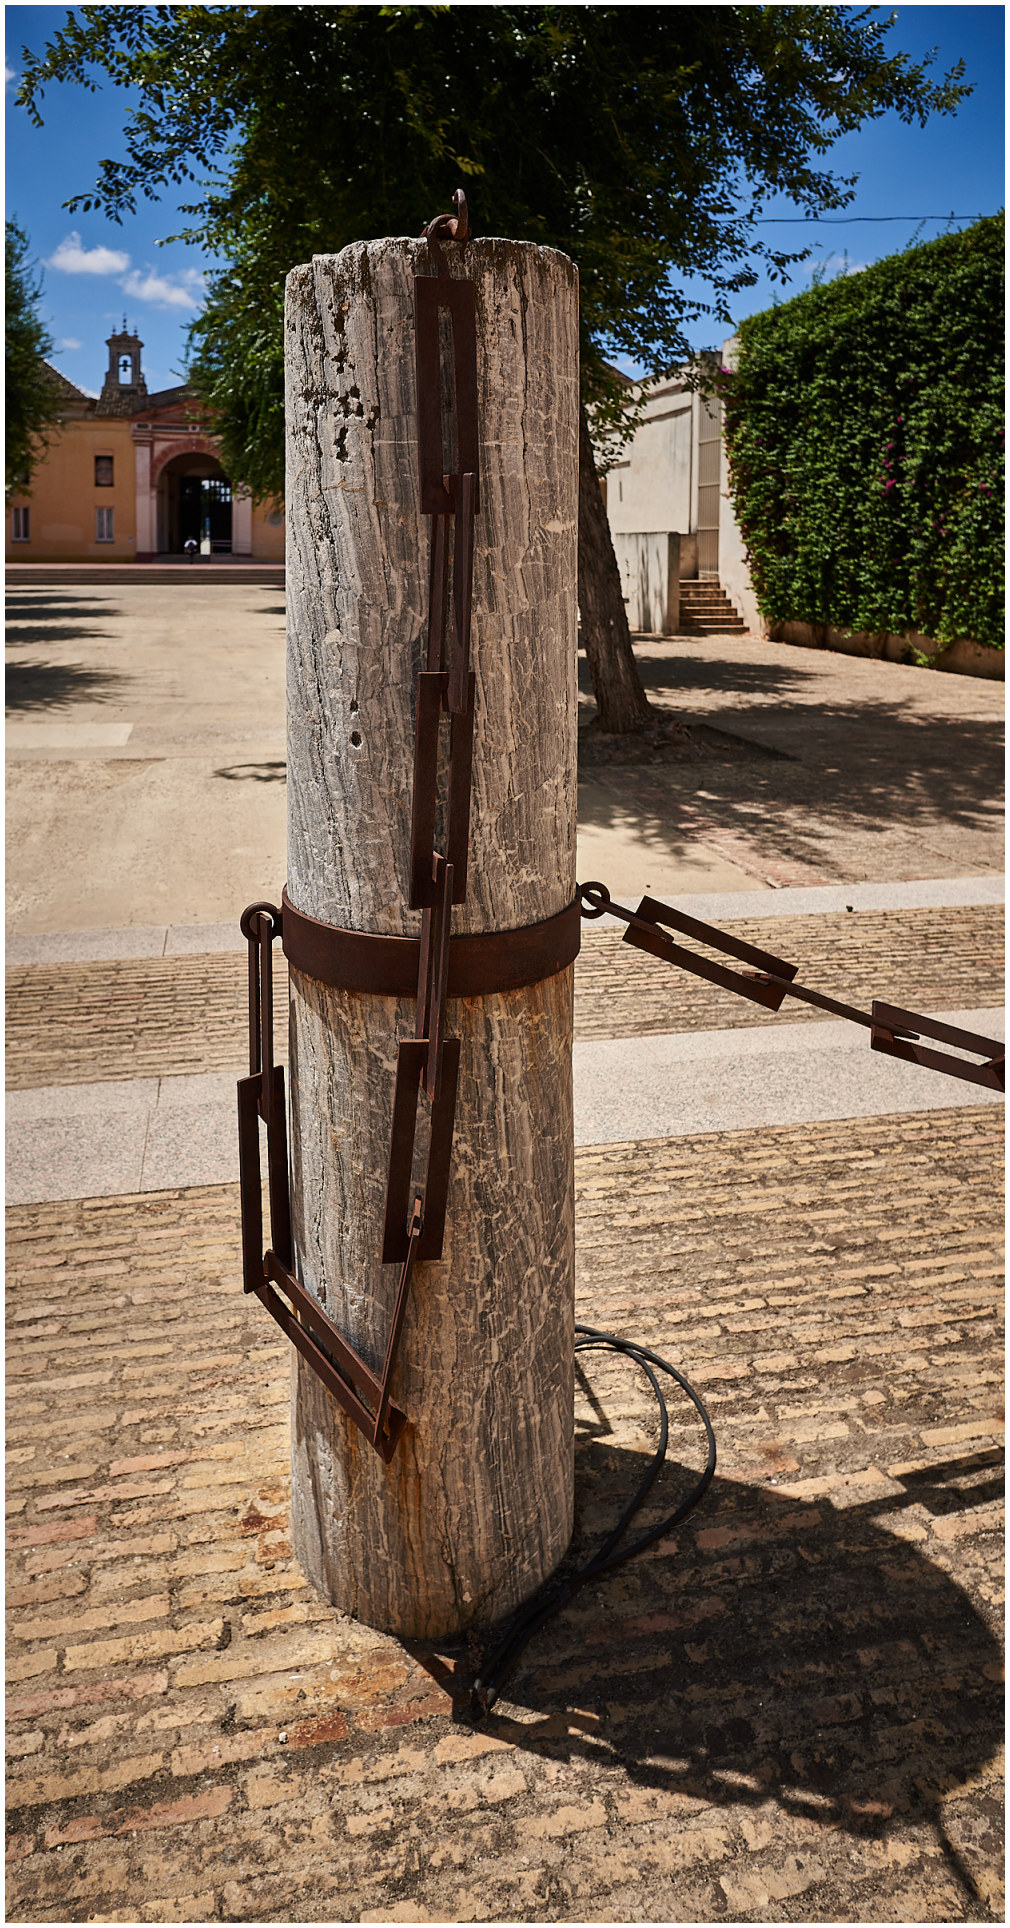 a wooden post